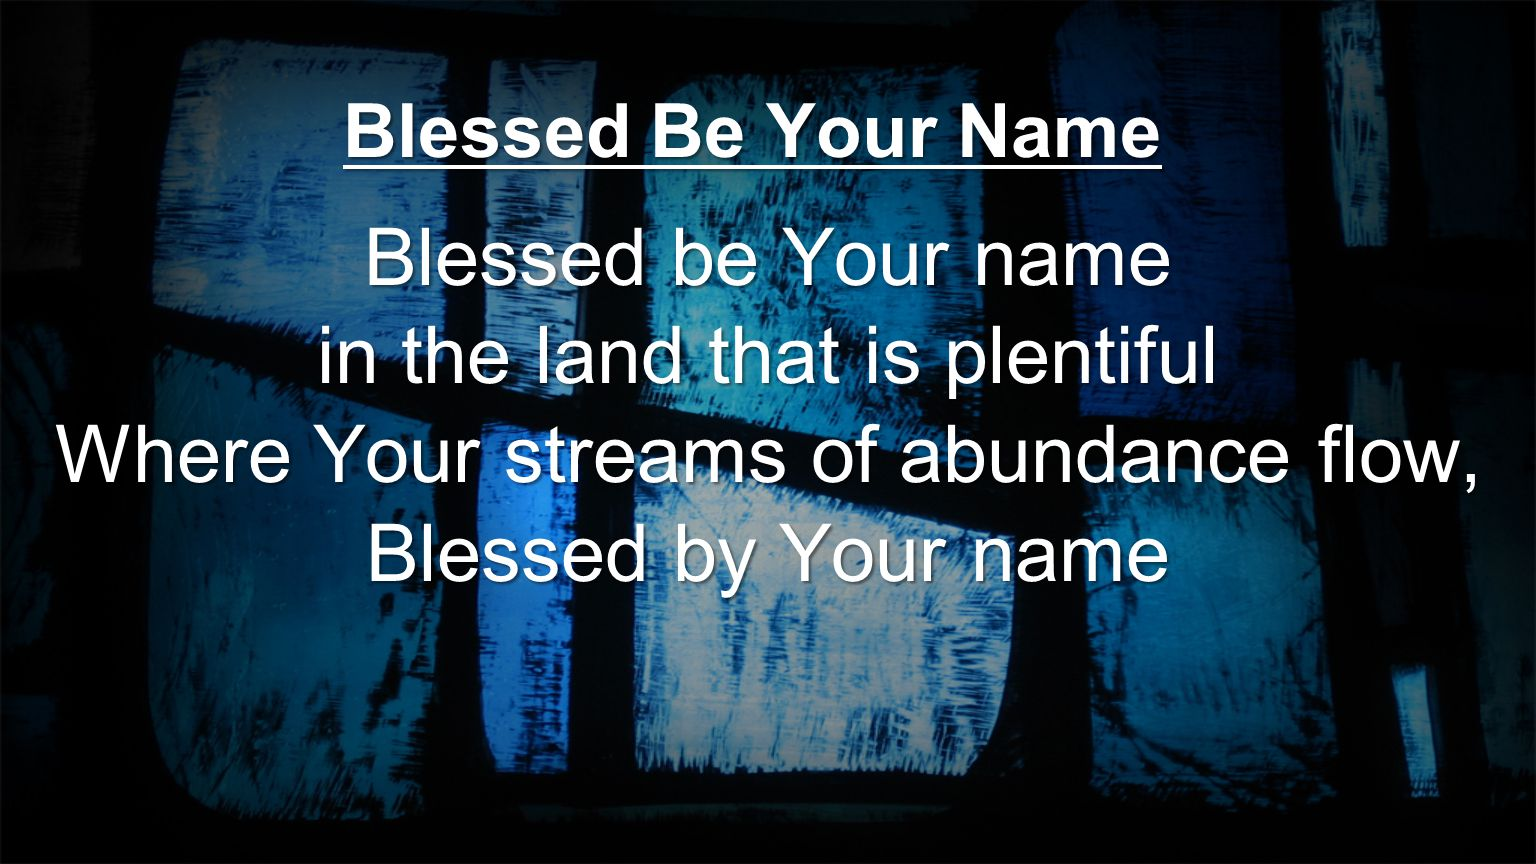 in the land that is plentiful Where Your streams of abundance flow,